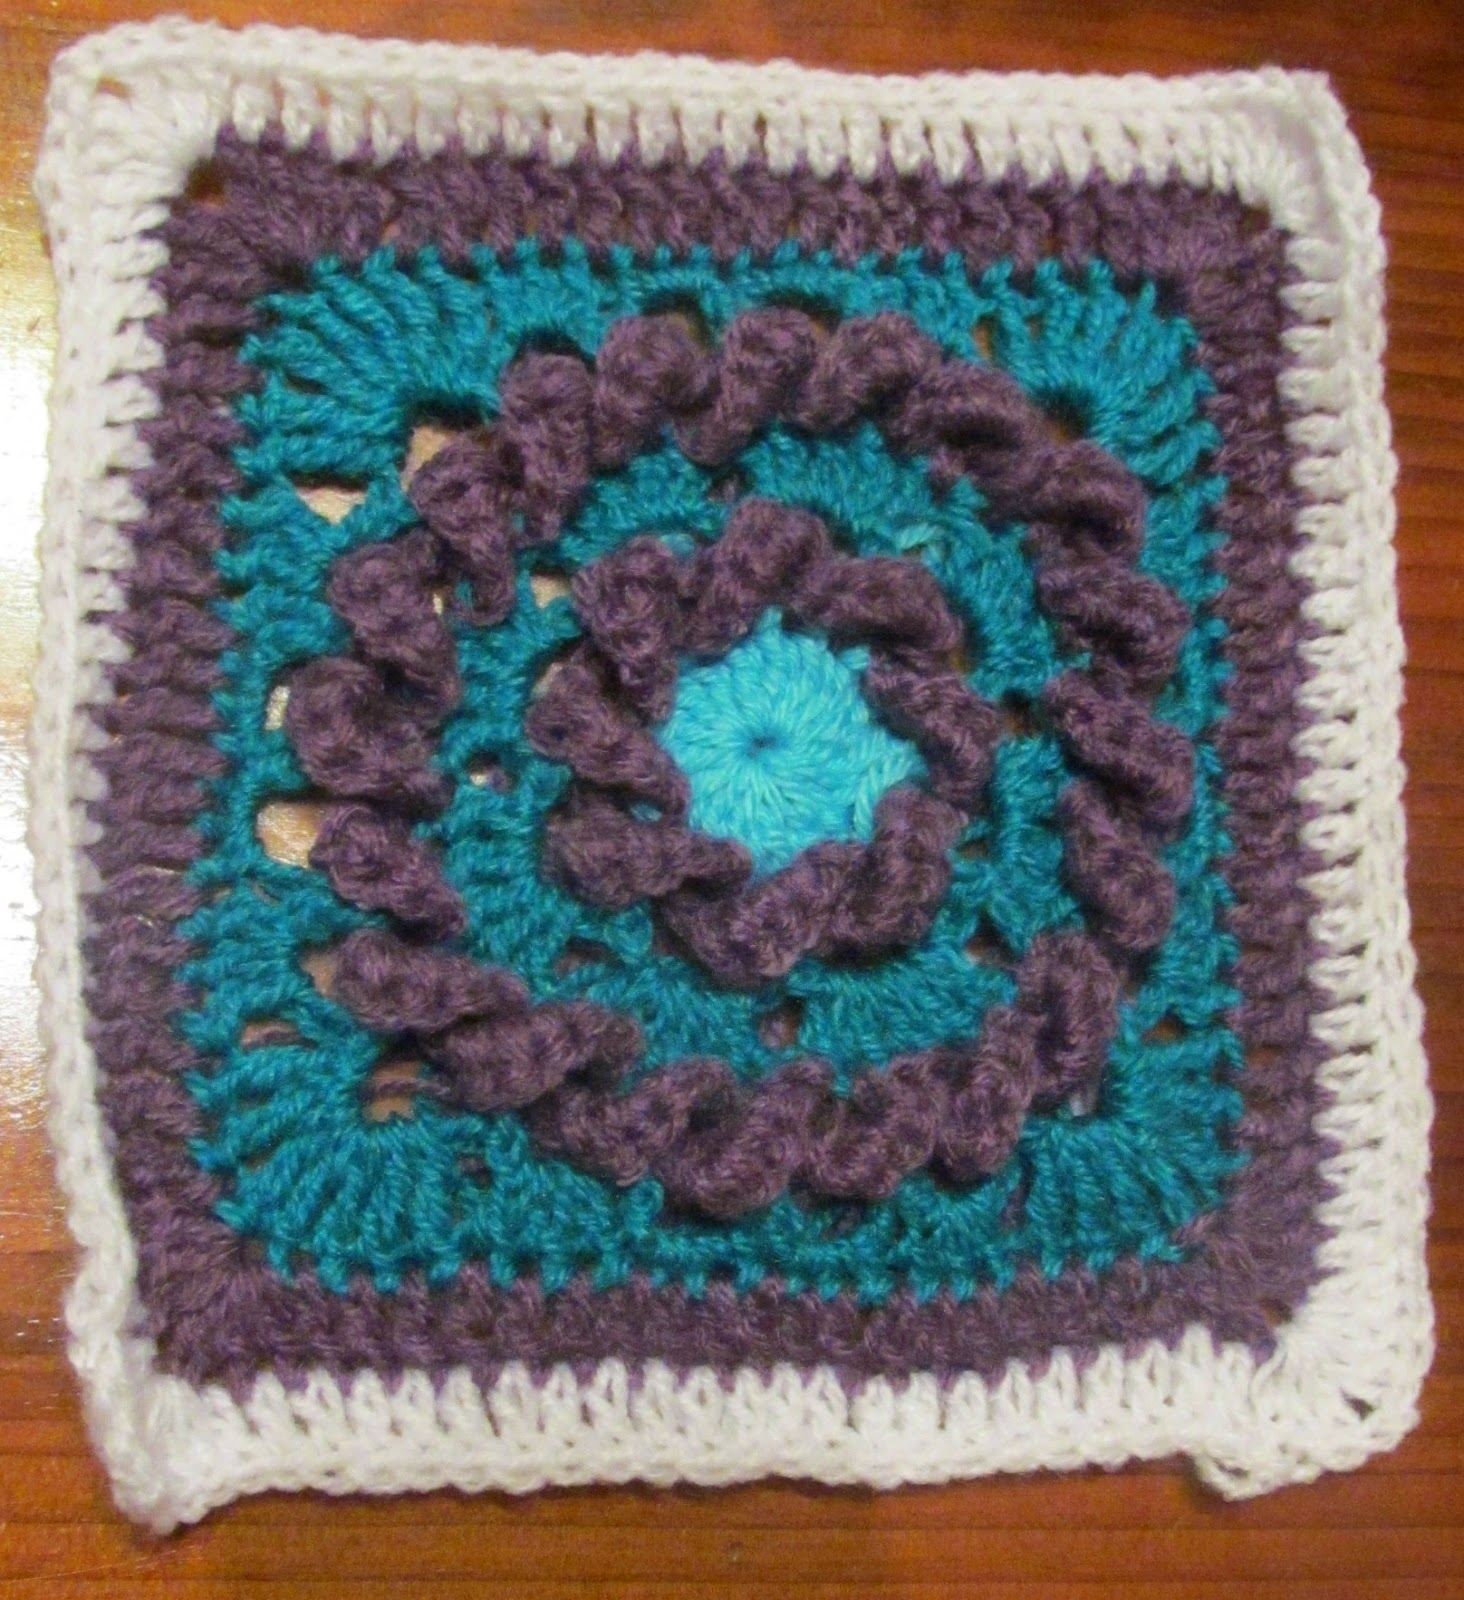 Knot Your Nanas Crochet Granny Square Crochet Along Revisited